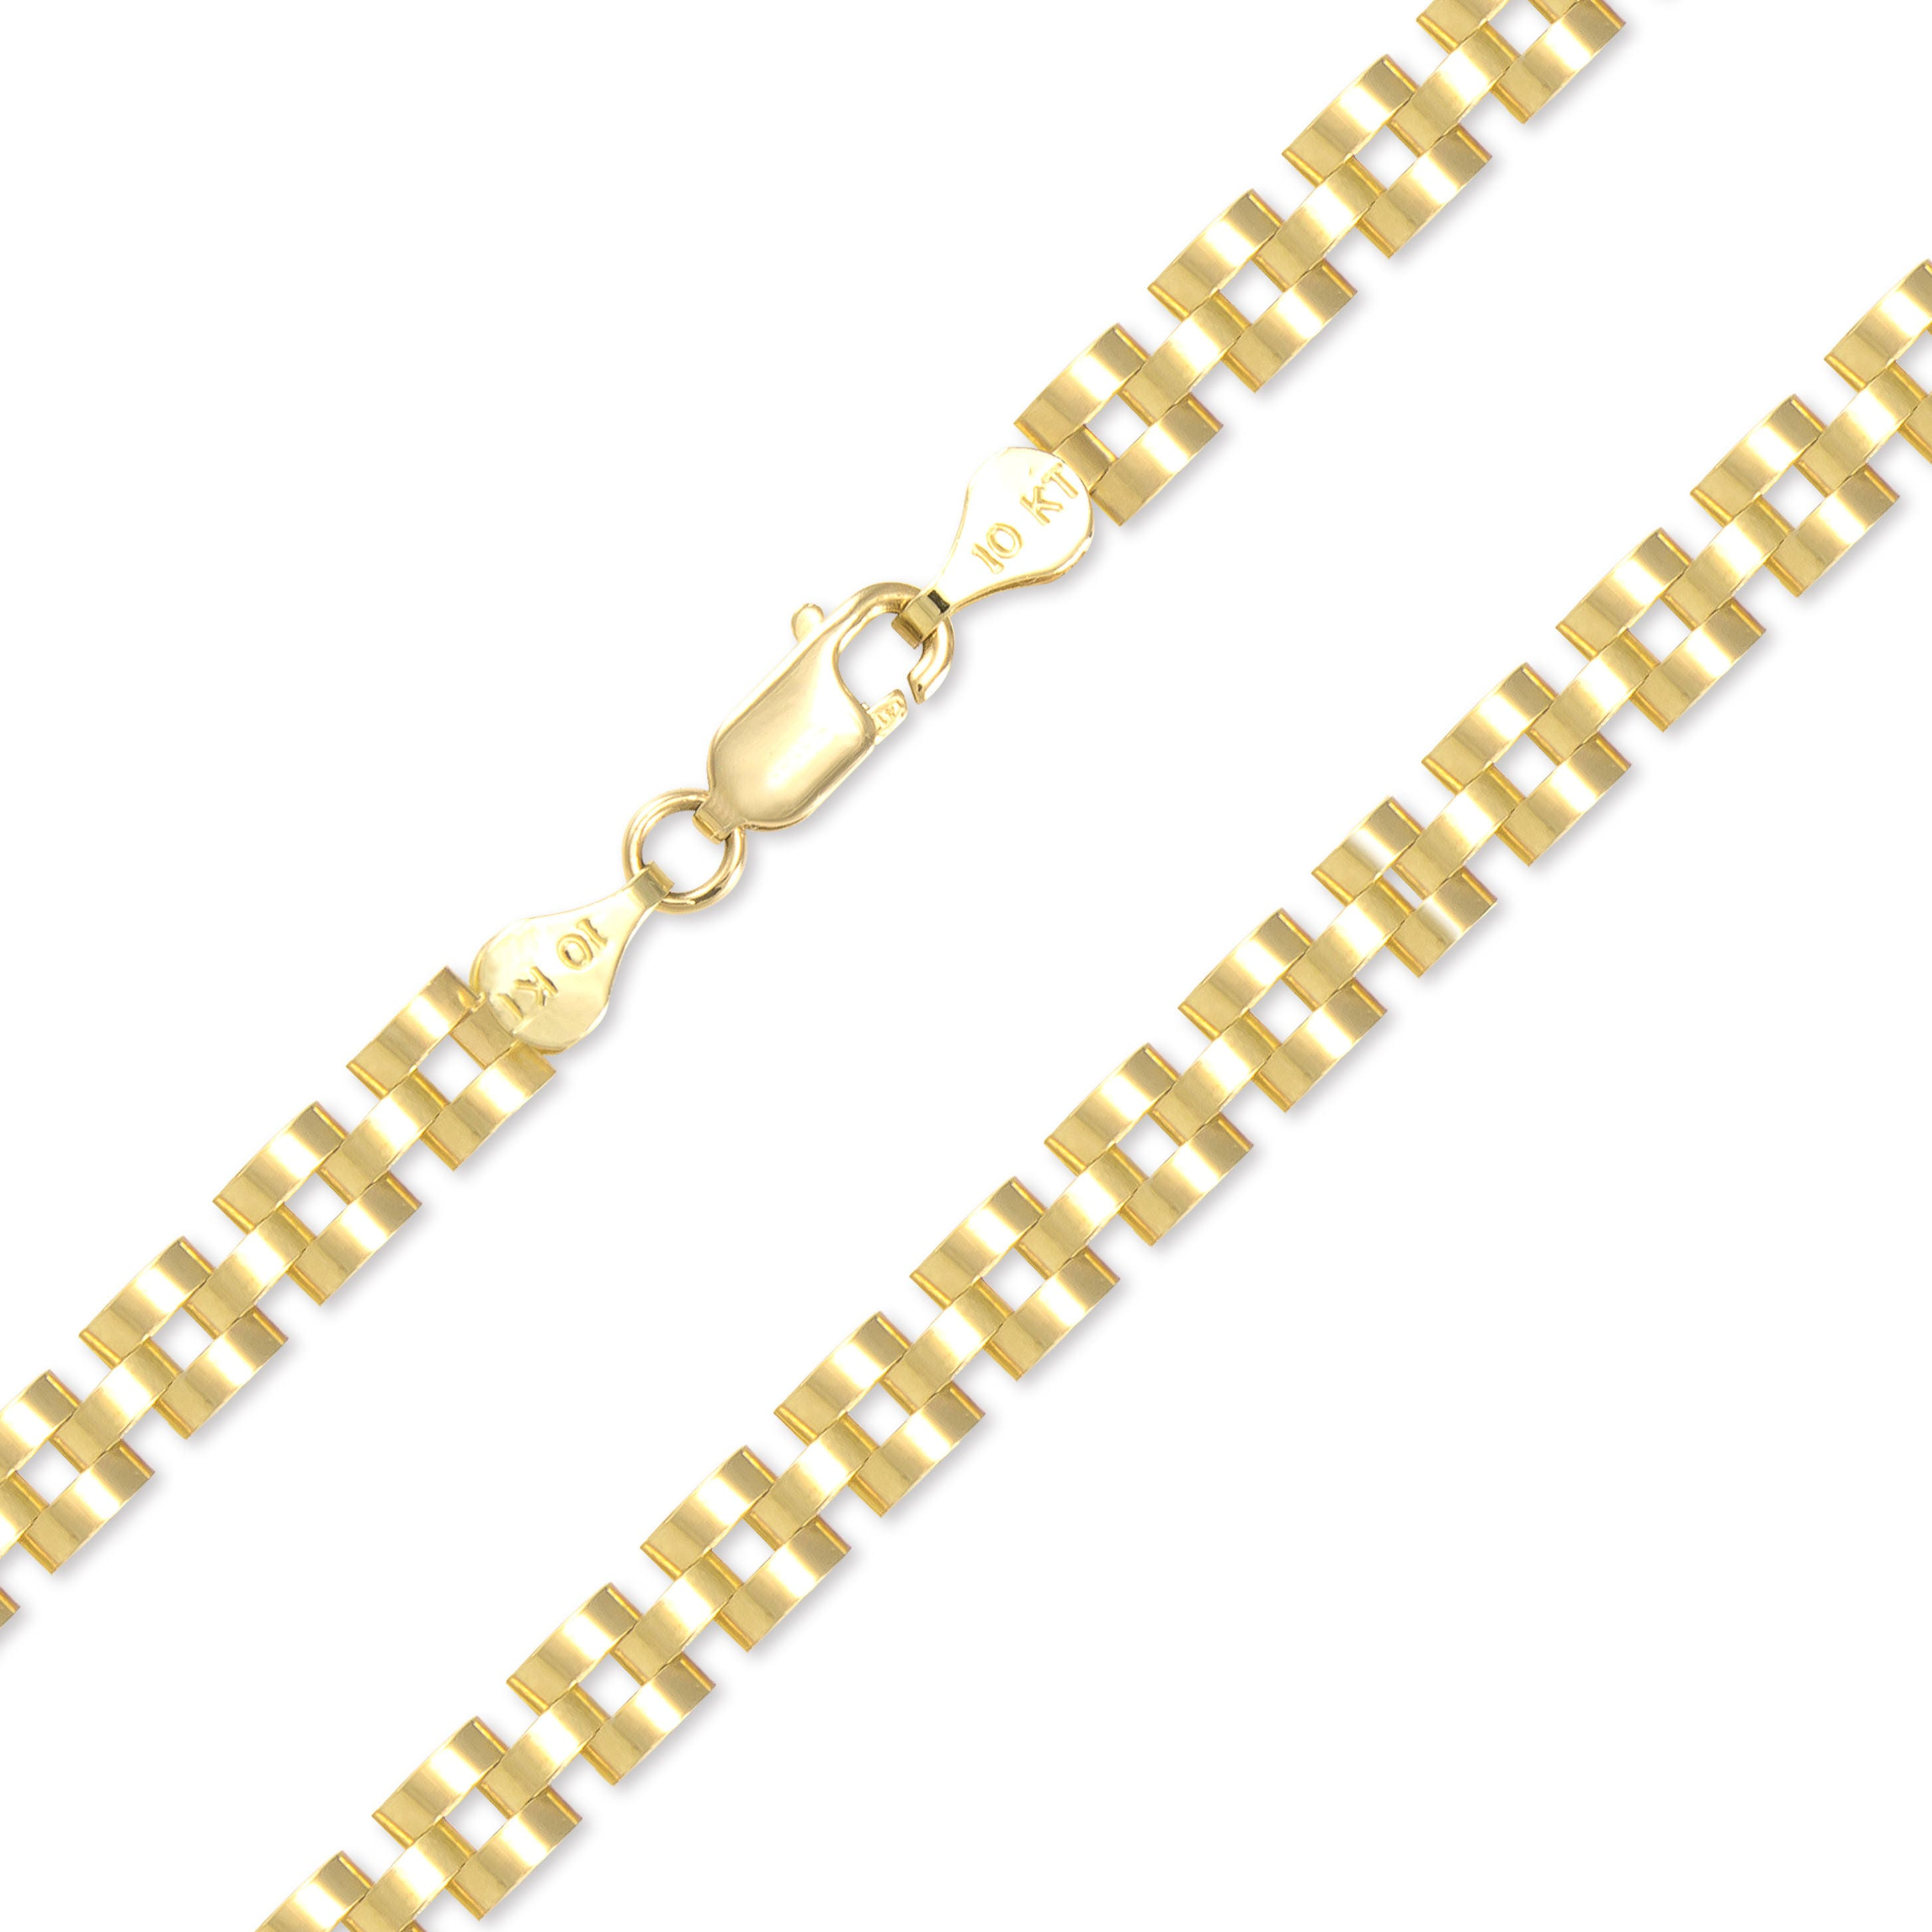 9037fa57fb0f2 10K Solid Yellow Gold Rolex Necklace Chain 6.0mm 18-30 - Watch Band Link